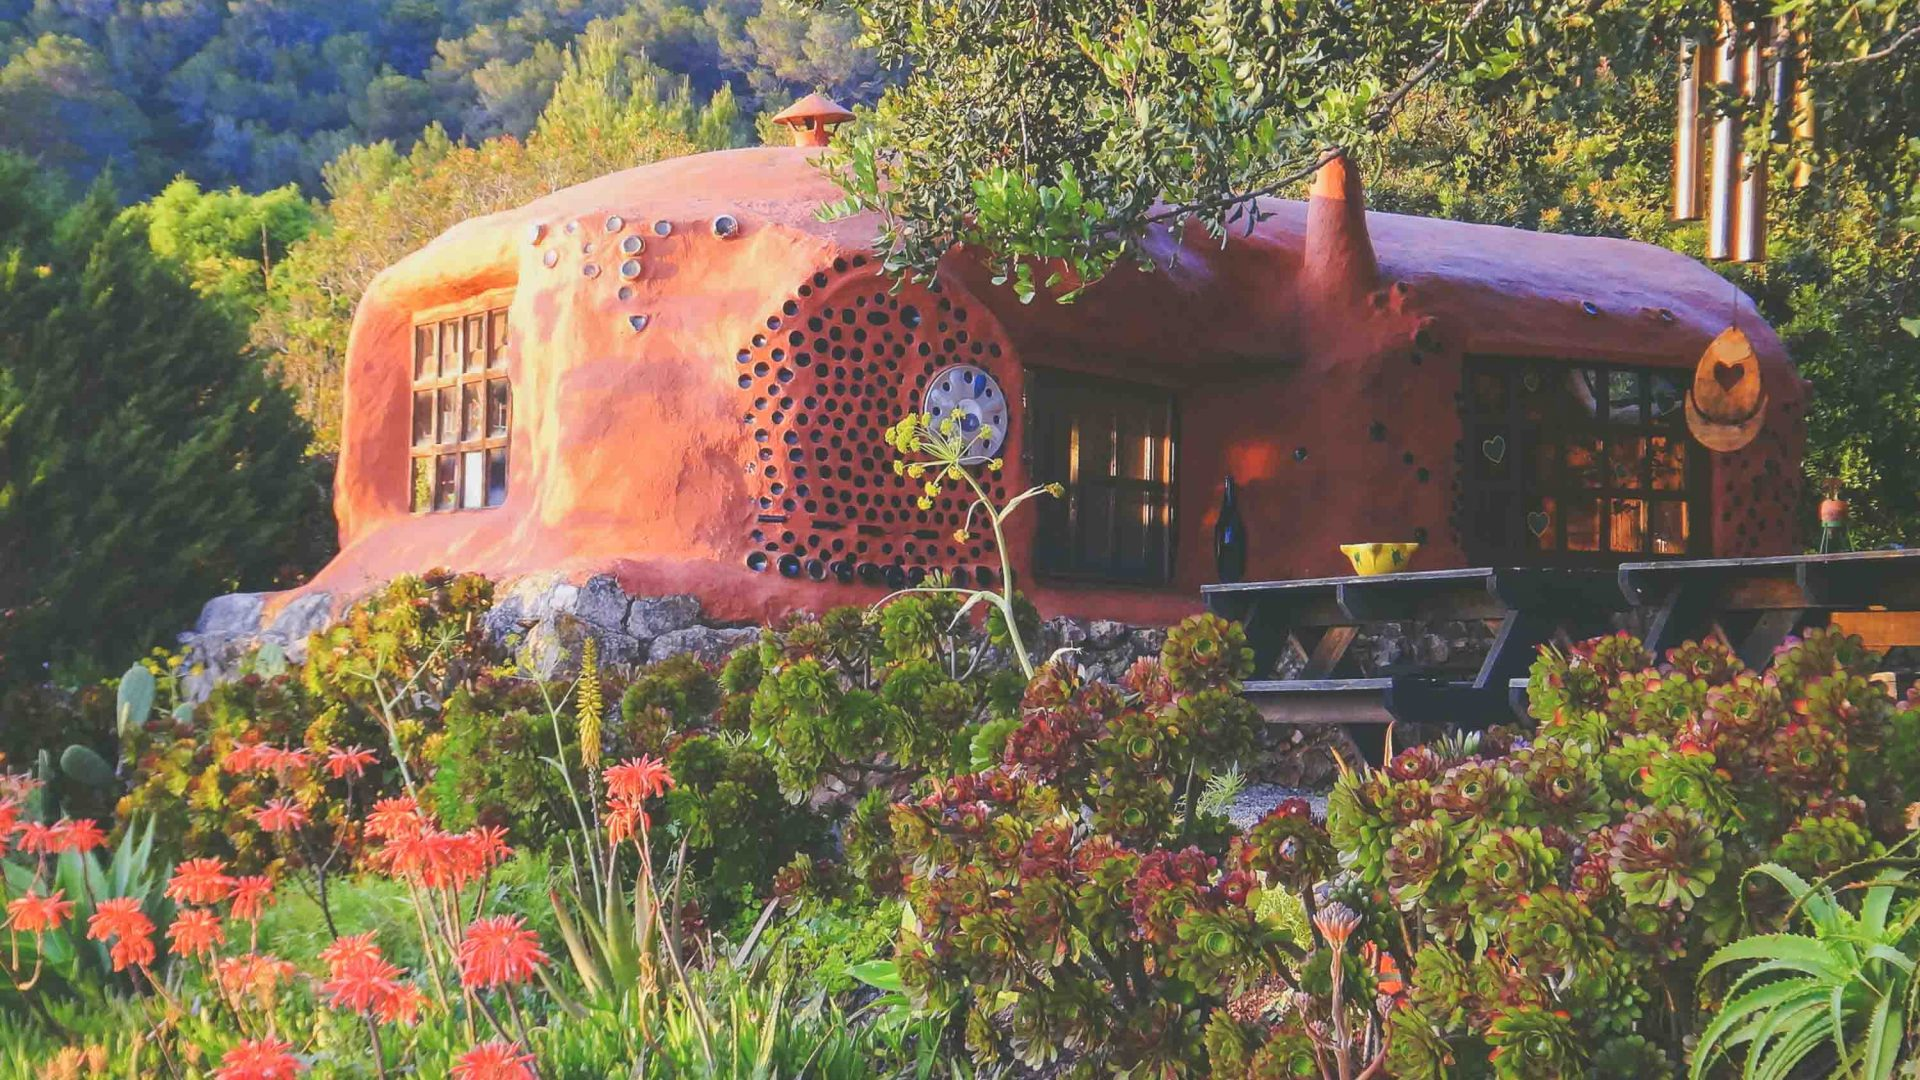 Bottle house, constructed with with recycled bottles at Casita Verde.